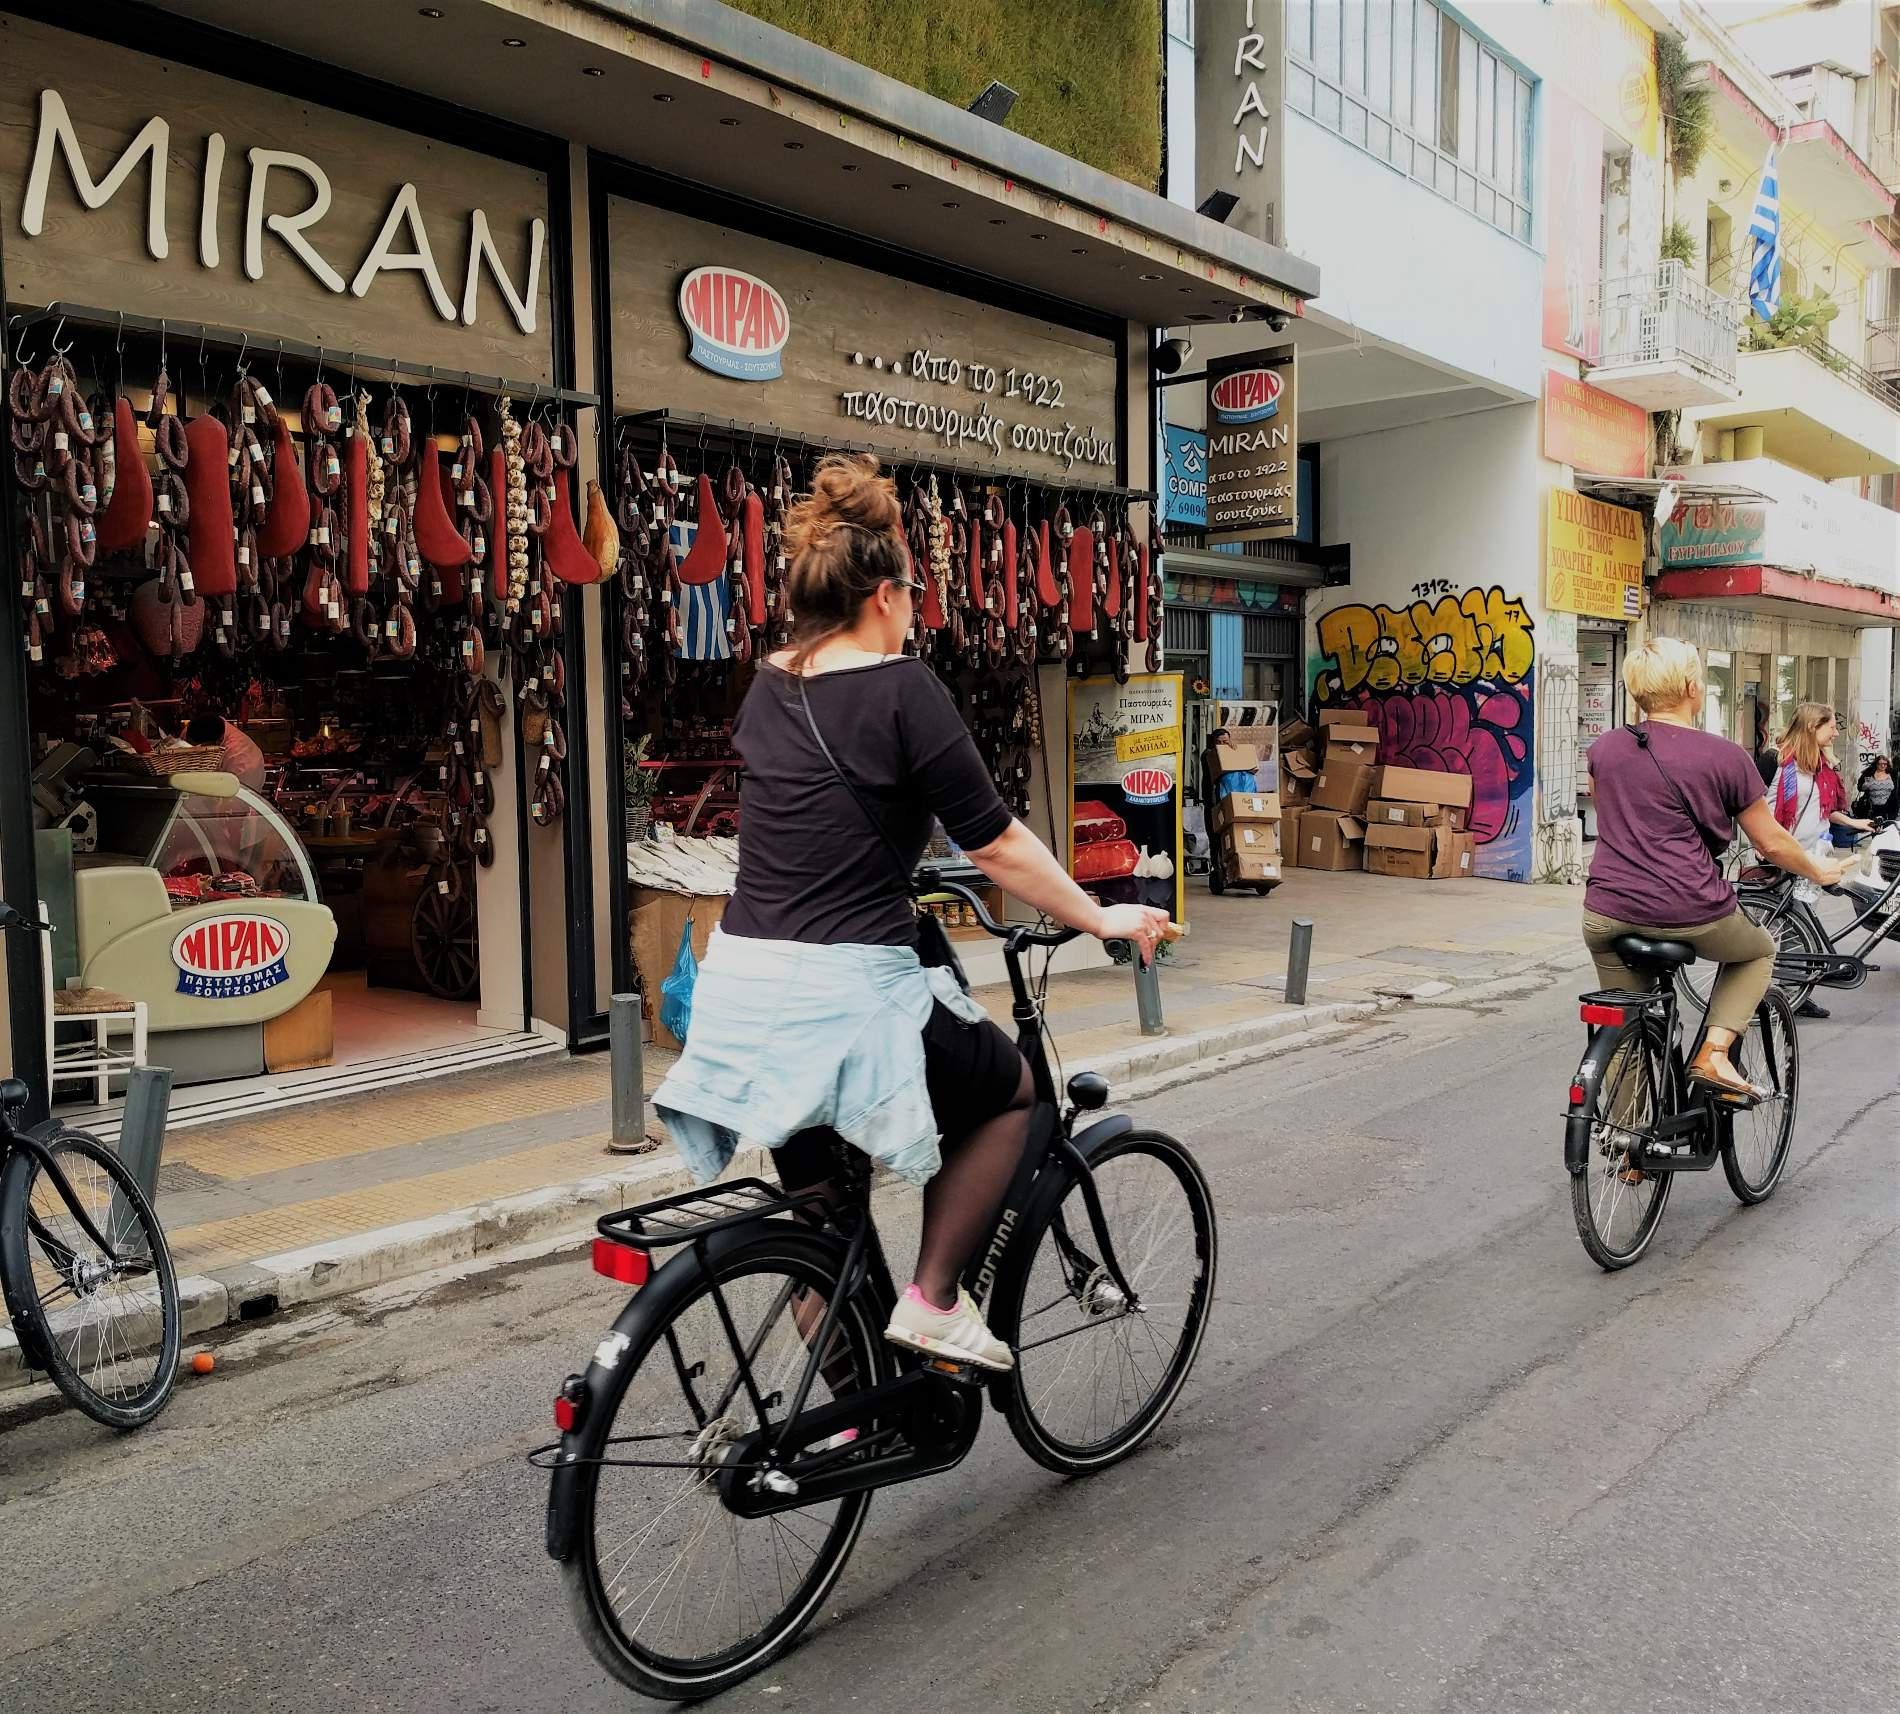 Cycling in downtown Athens isn't easy but is really useful in exploring many of the city's rustic neighborhoods, like Psyrri which is full of hidden gems. Source: Truevoyagers